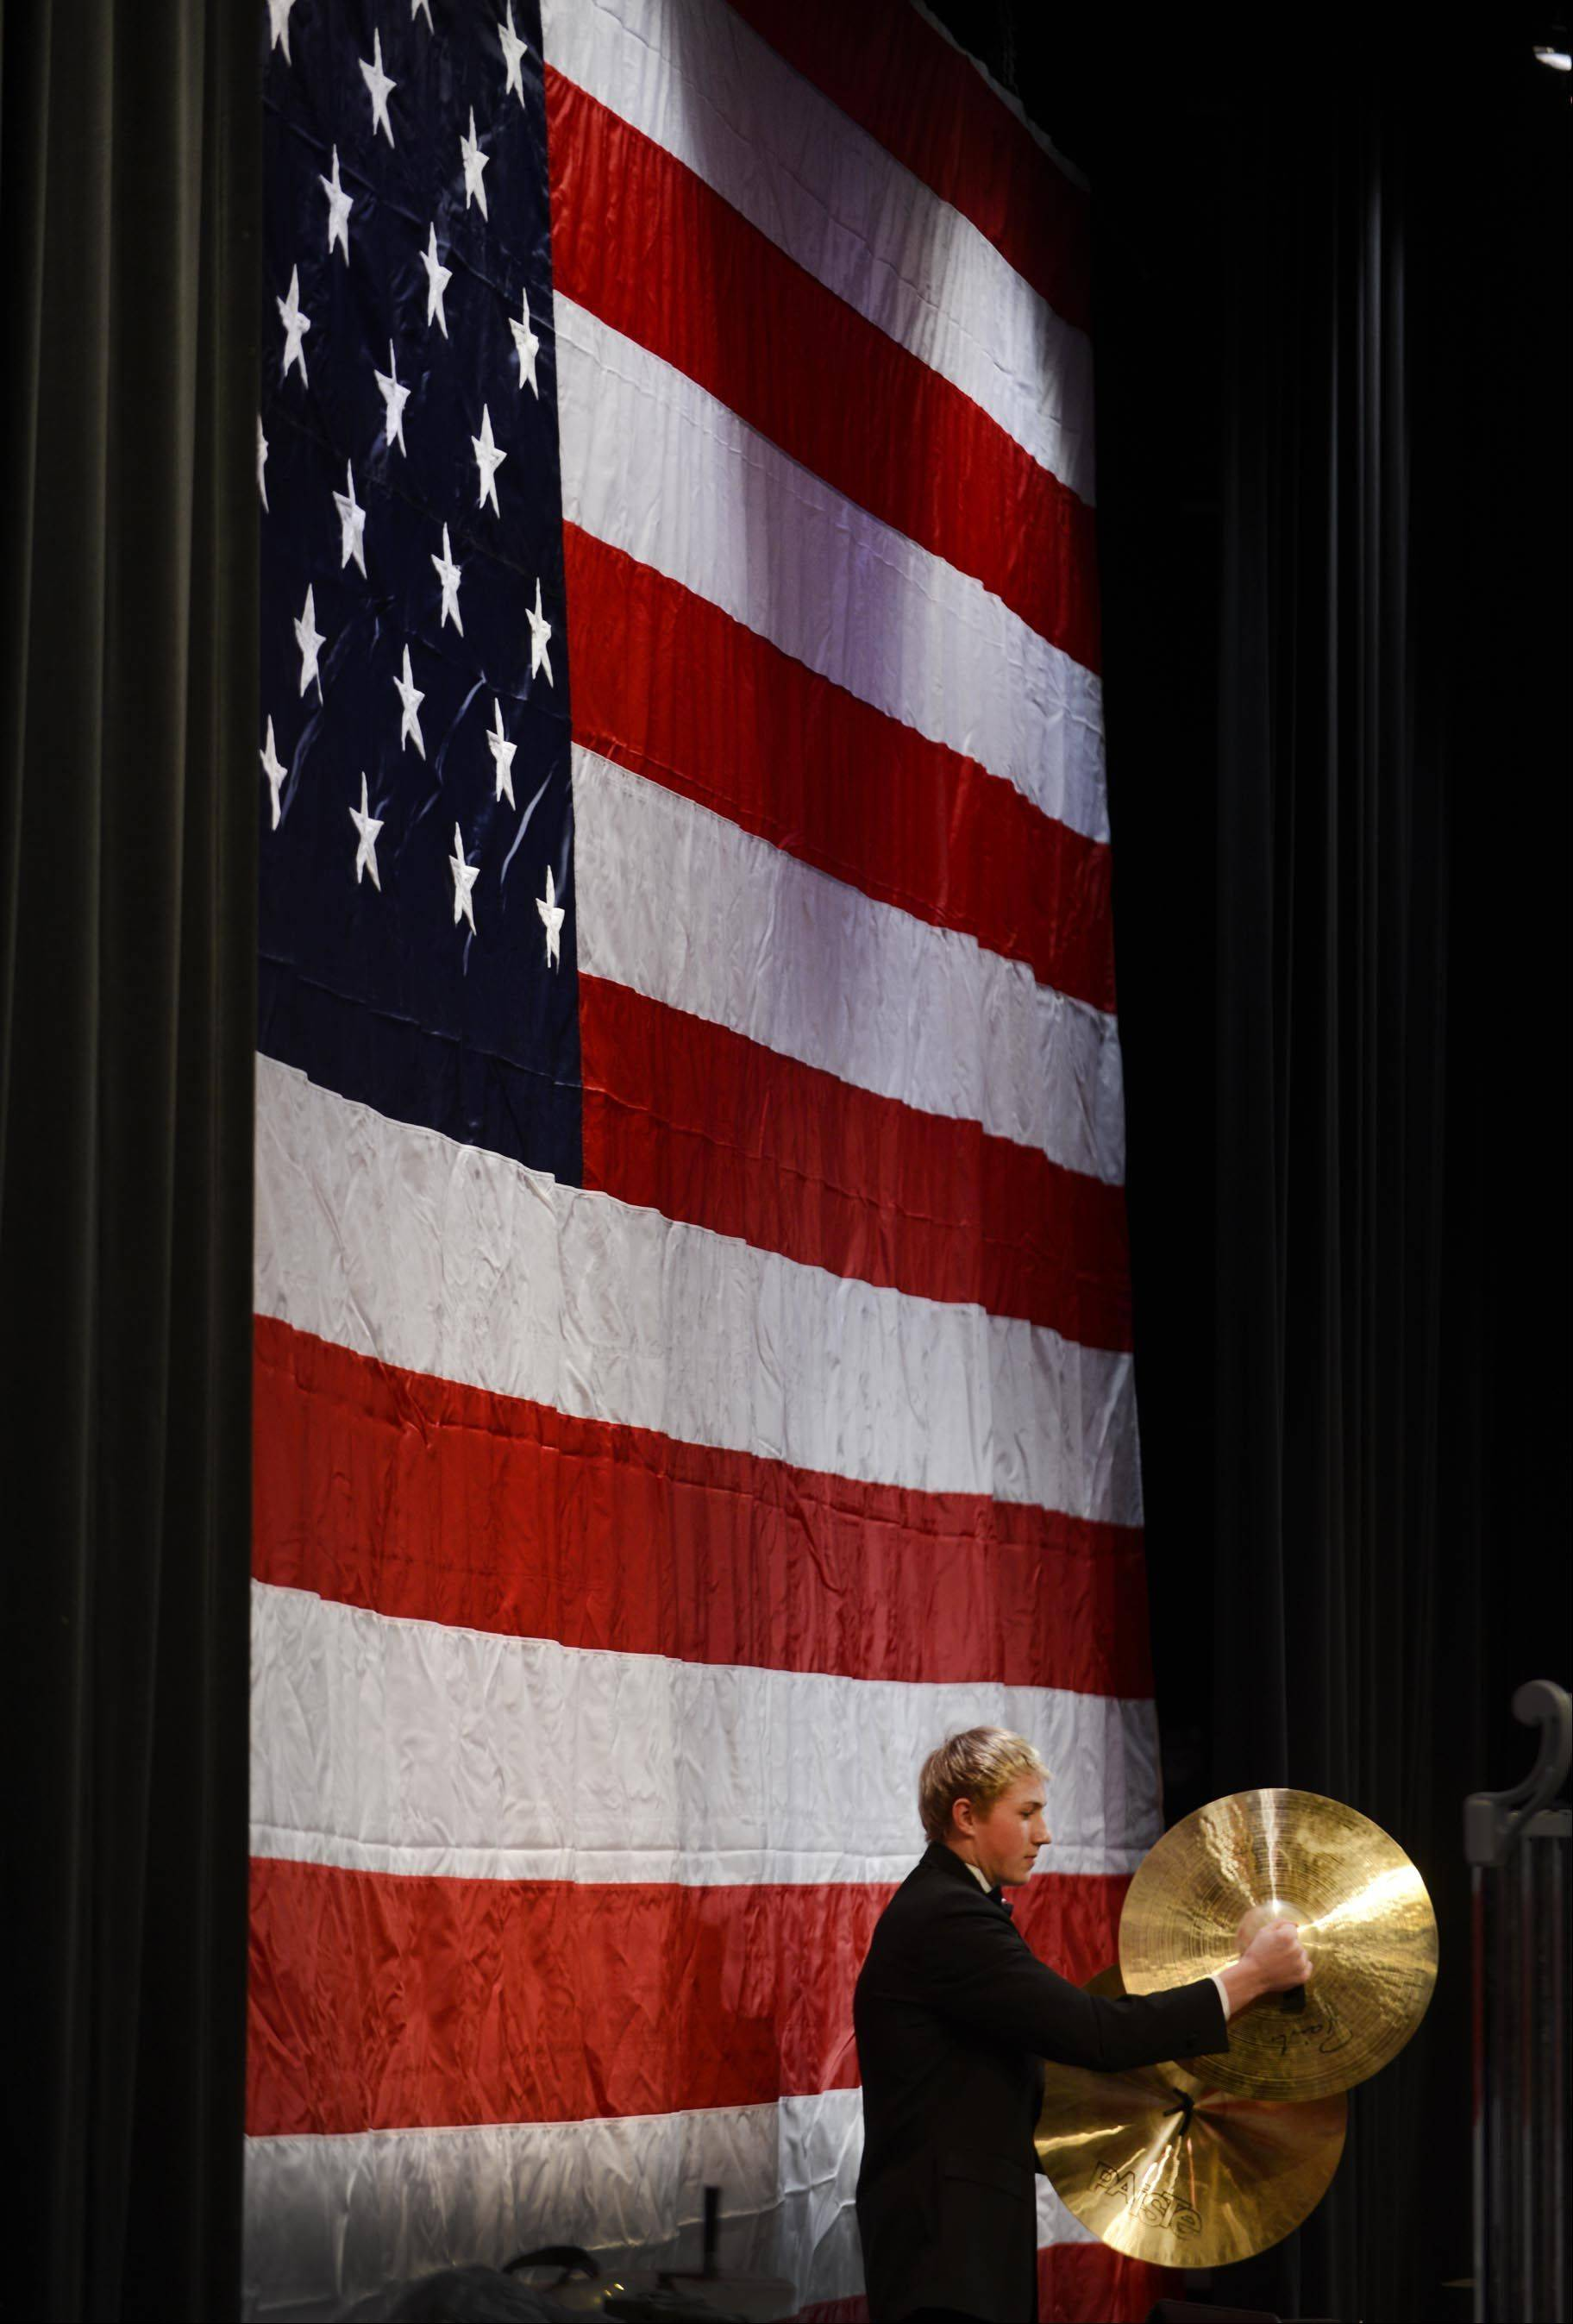 Percussionist Nathan Bawolek crashes the cymbals Monday at a Veterans Celebration Concert at St. Charles North High School. The school's student musicians played patriotic music during the program and veterans from every branch of the armed services were invited to stand as their theme song was played.